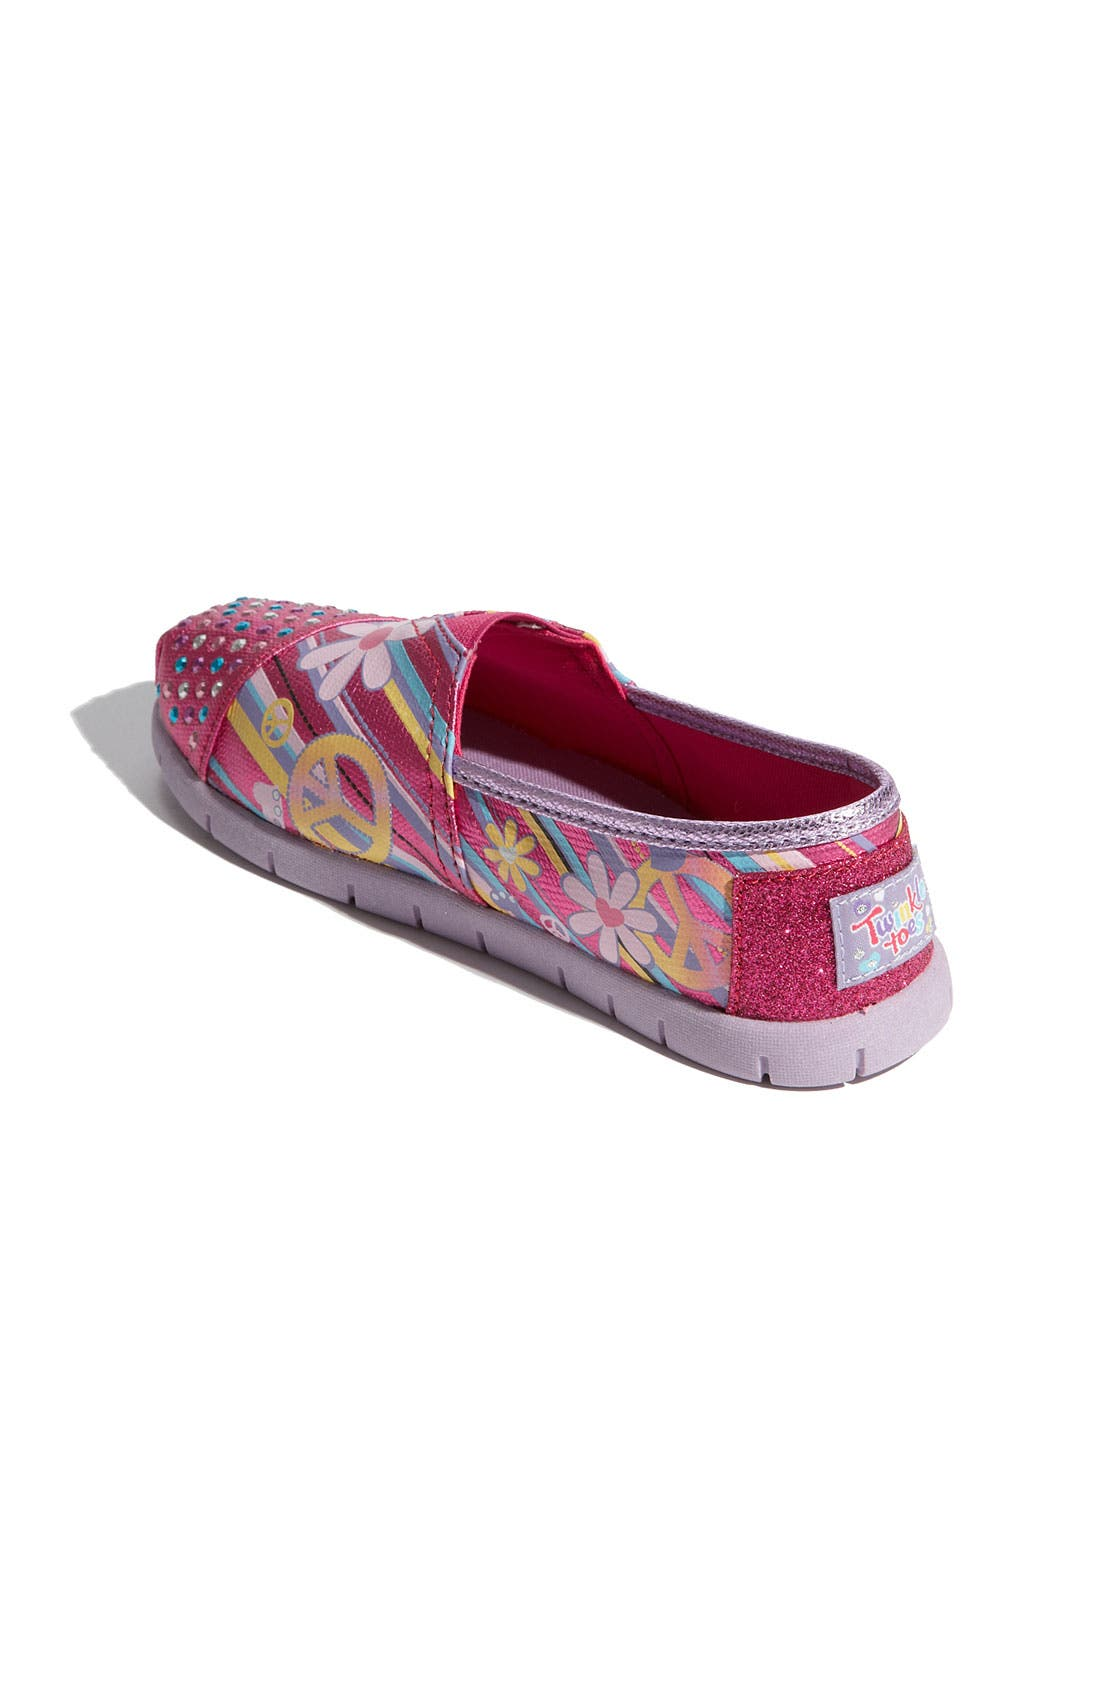 Alternate Image 2  - SKECHERS 'Shuffle Ups' Slip-On (Toddler, Little Kid & Big Kid)